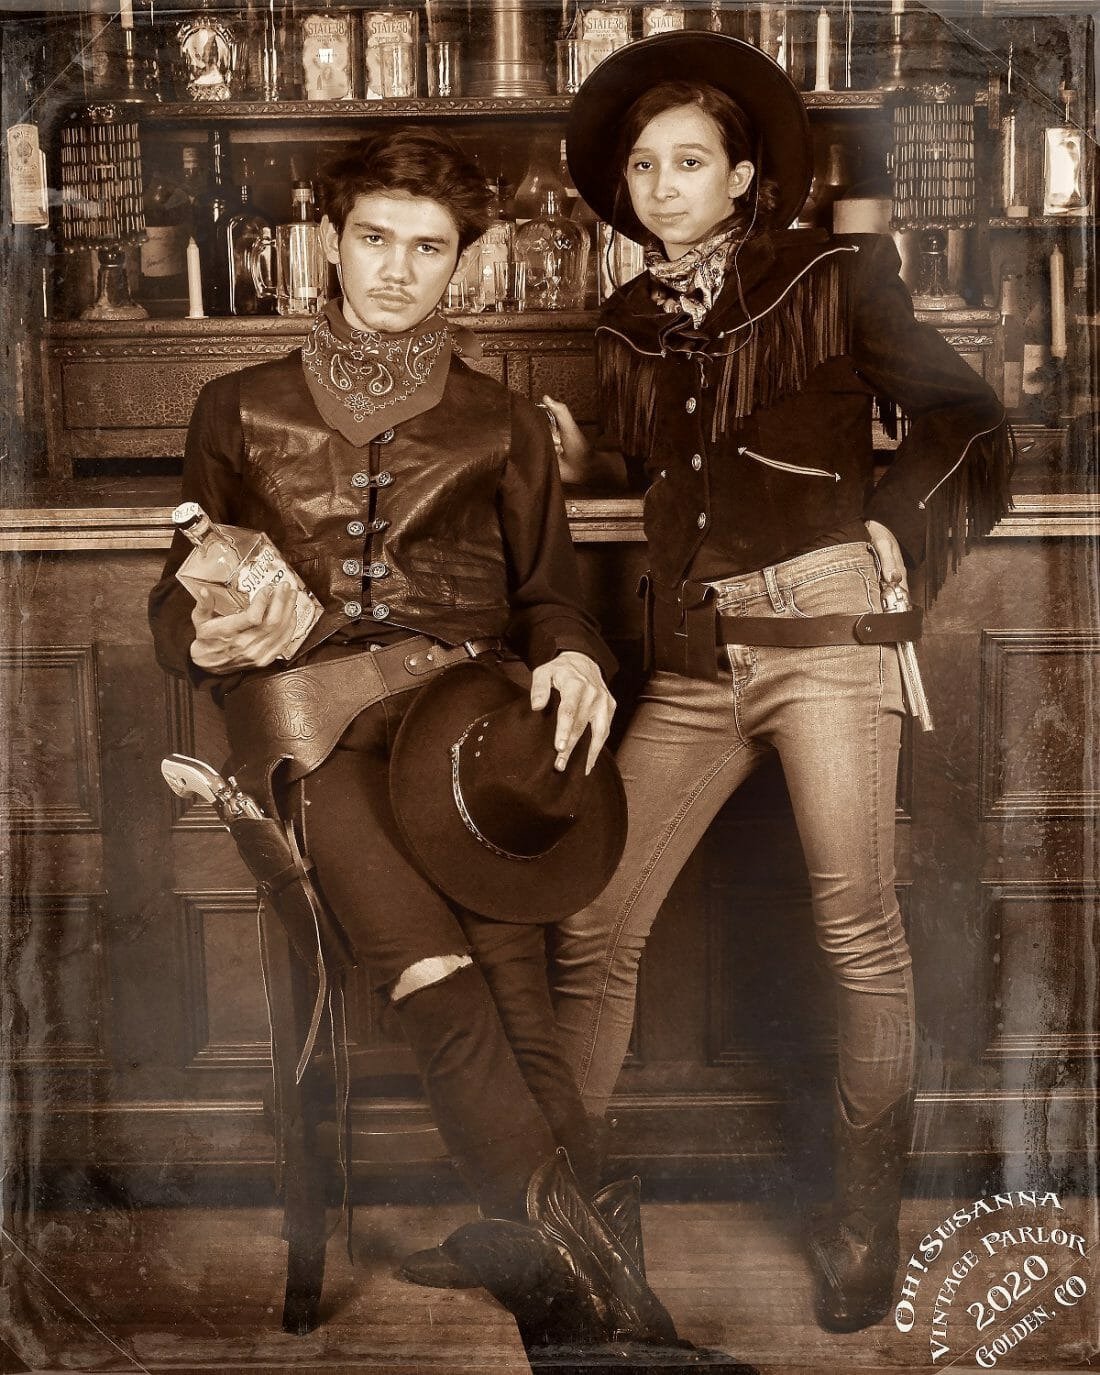 A young man and woman pose for a black and white wild west photograph; scene set to look like an old saloon